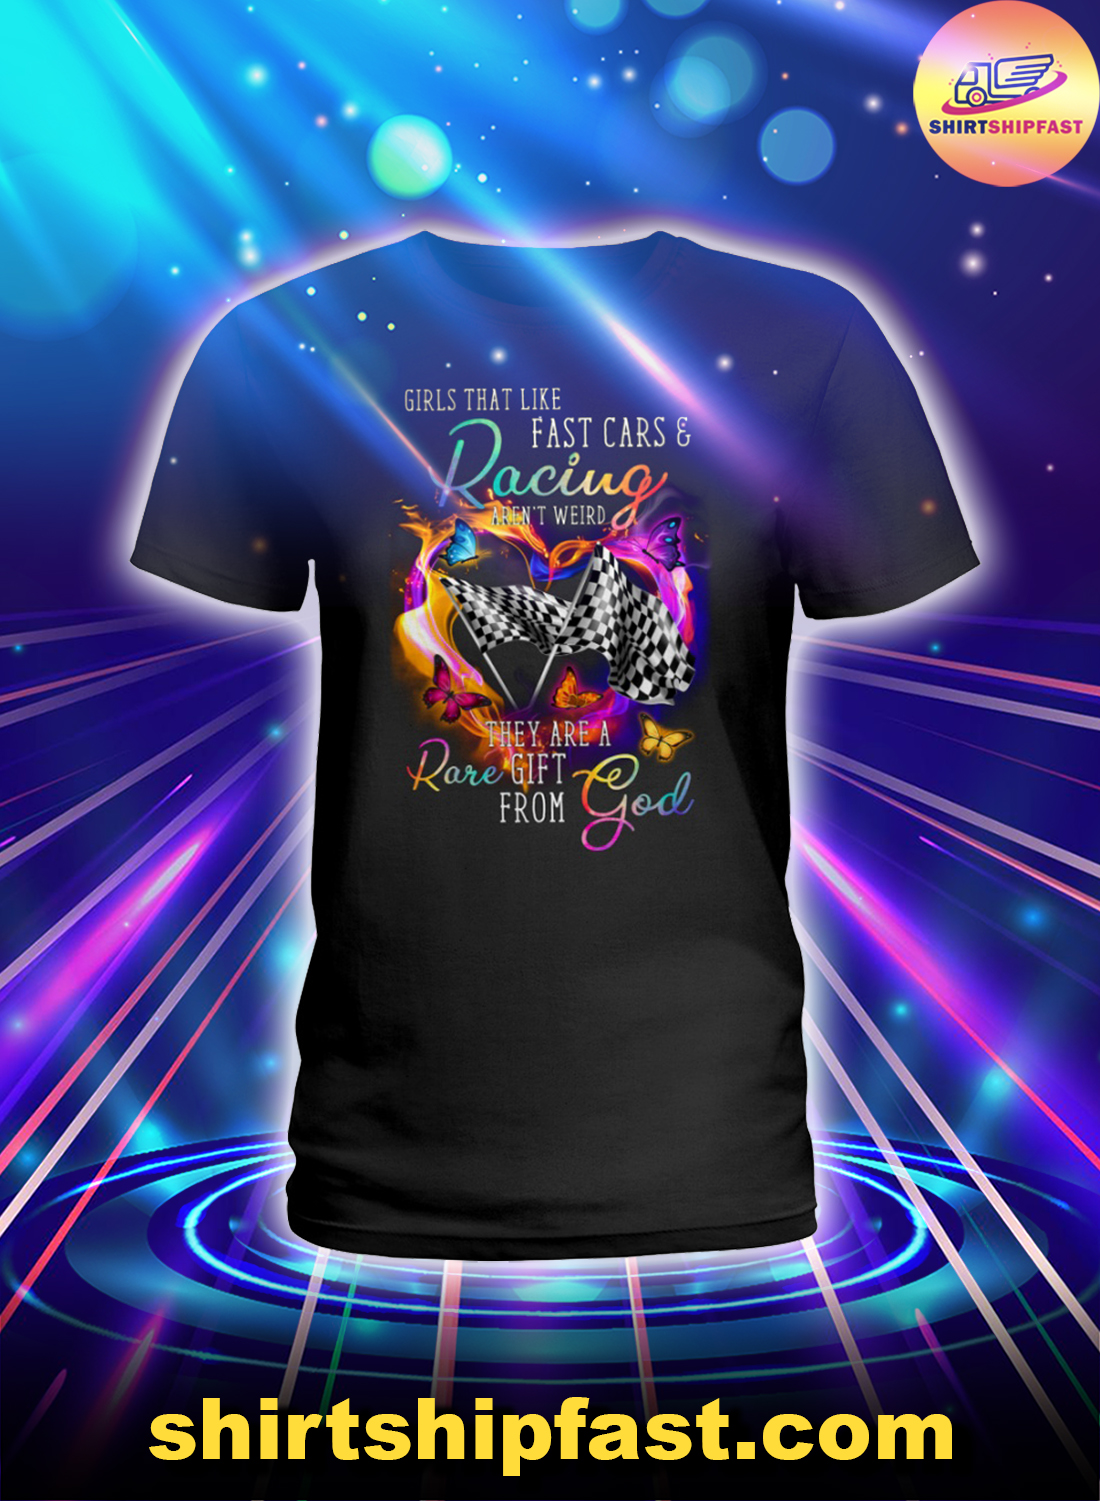 Girls that like fast cars and racing aren't weird lady shirt